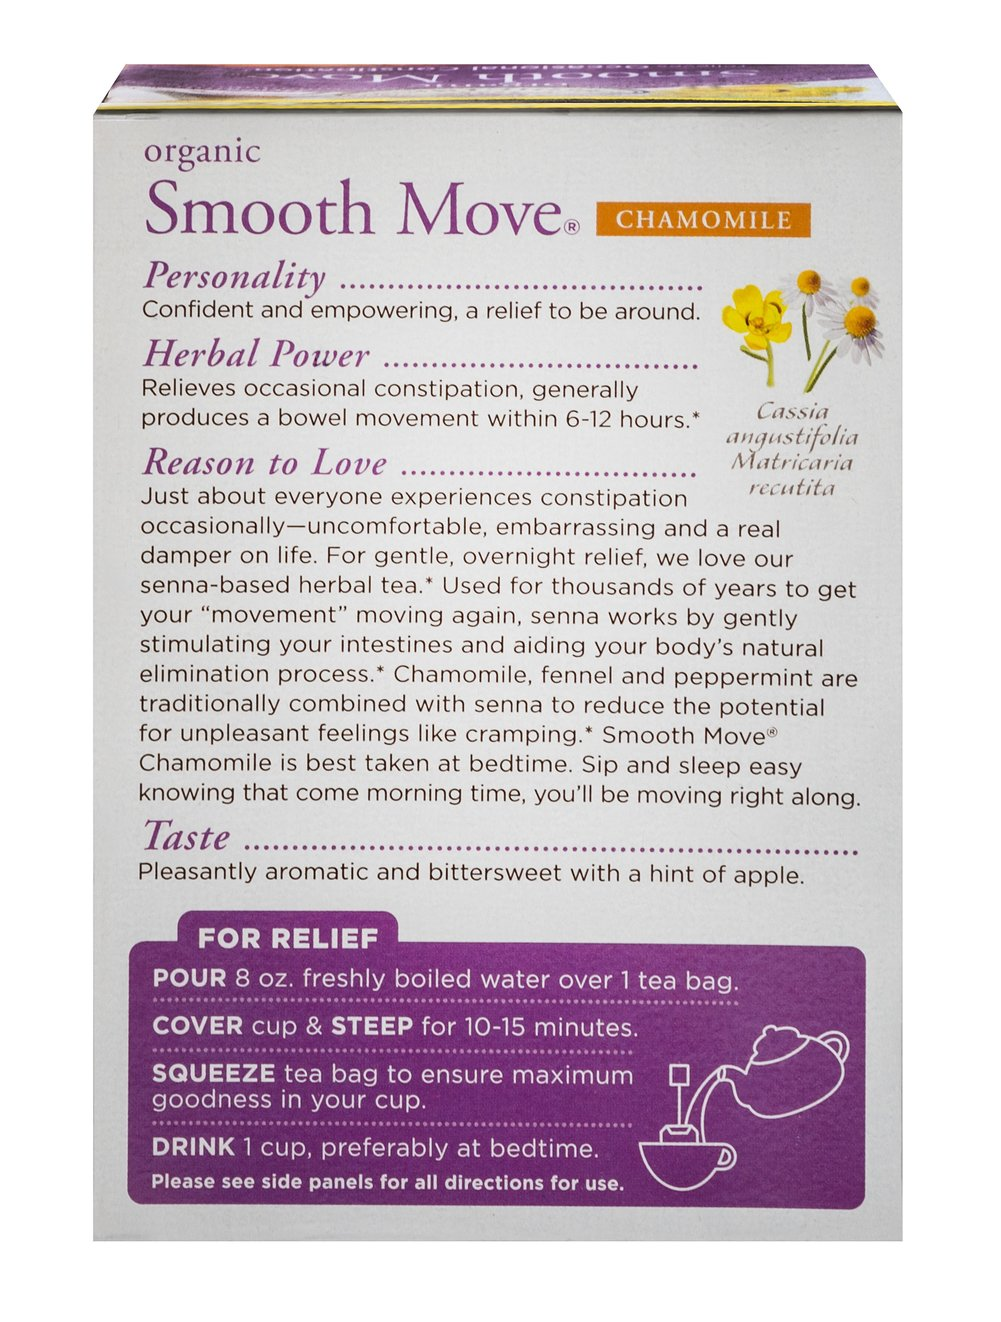 Organic Smooth Move® Chamomile Tea Thumbnail Alternate Bottle View